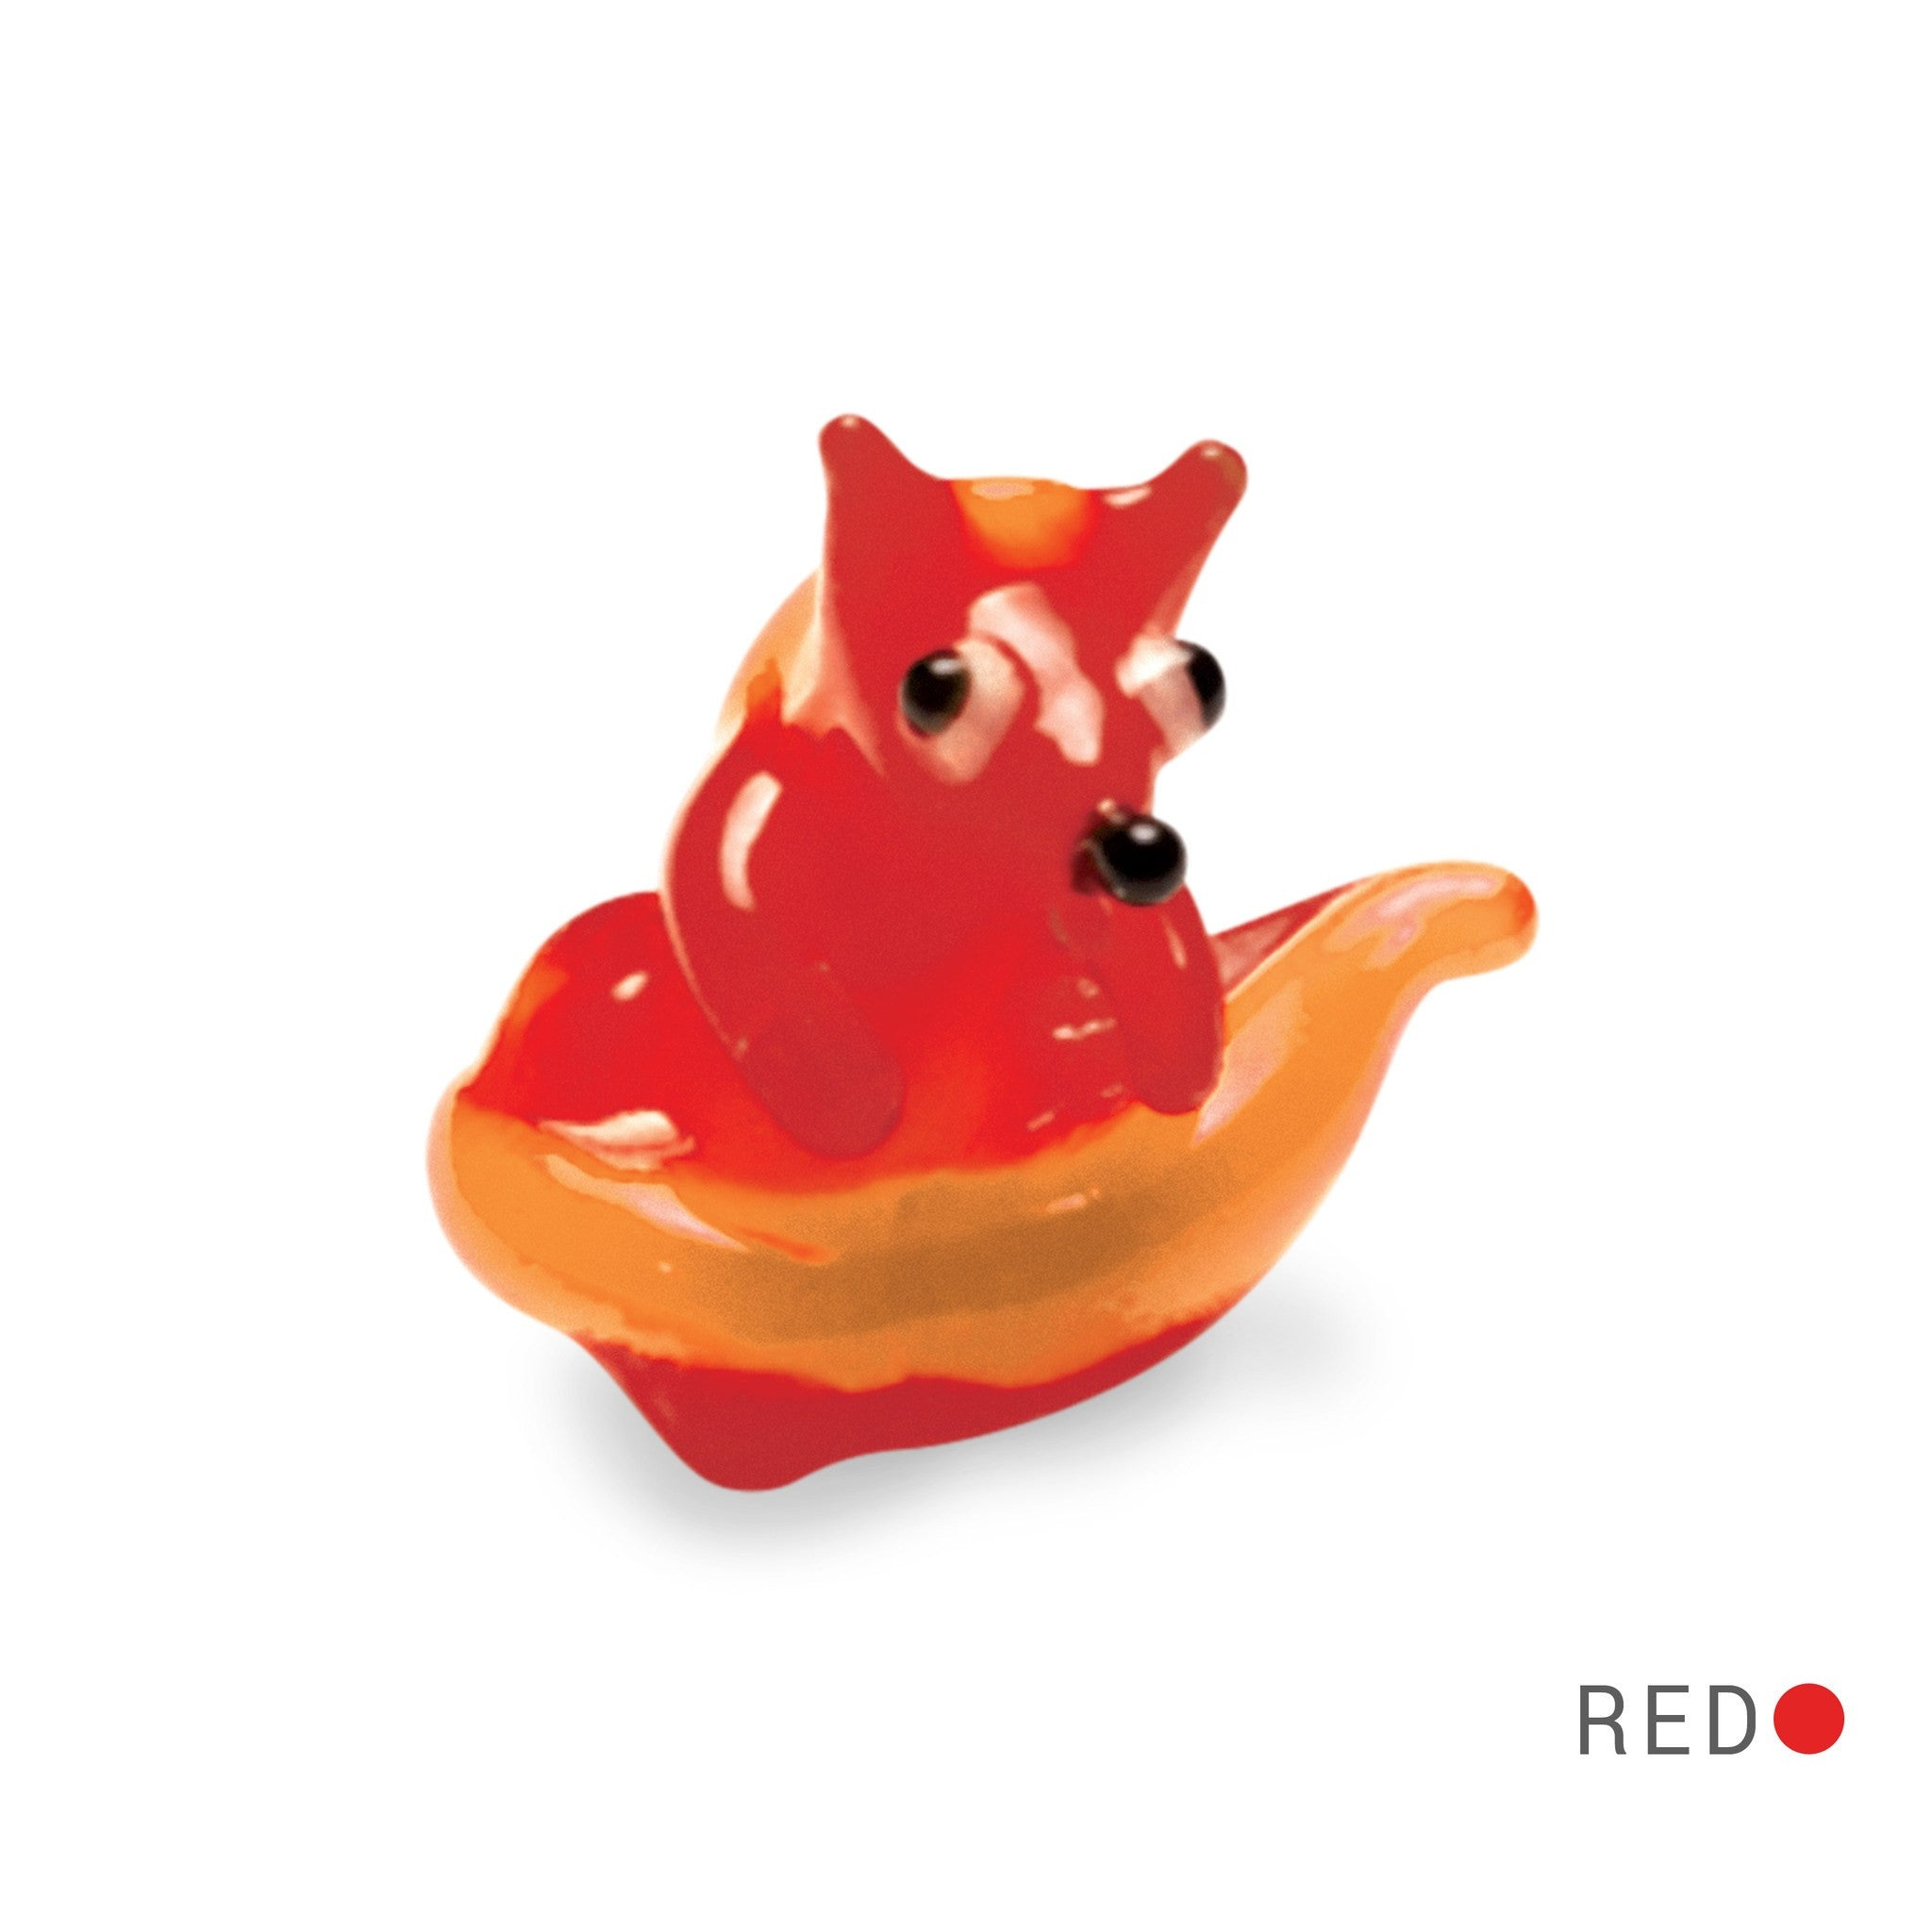 Red the Red Fox (in Tynies Collector's Frame) Miniature glass figurines